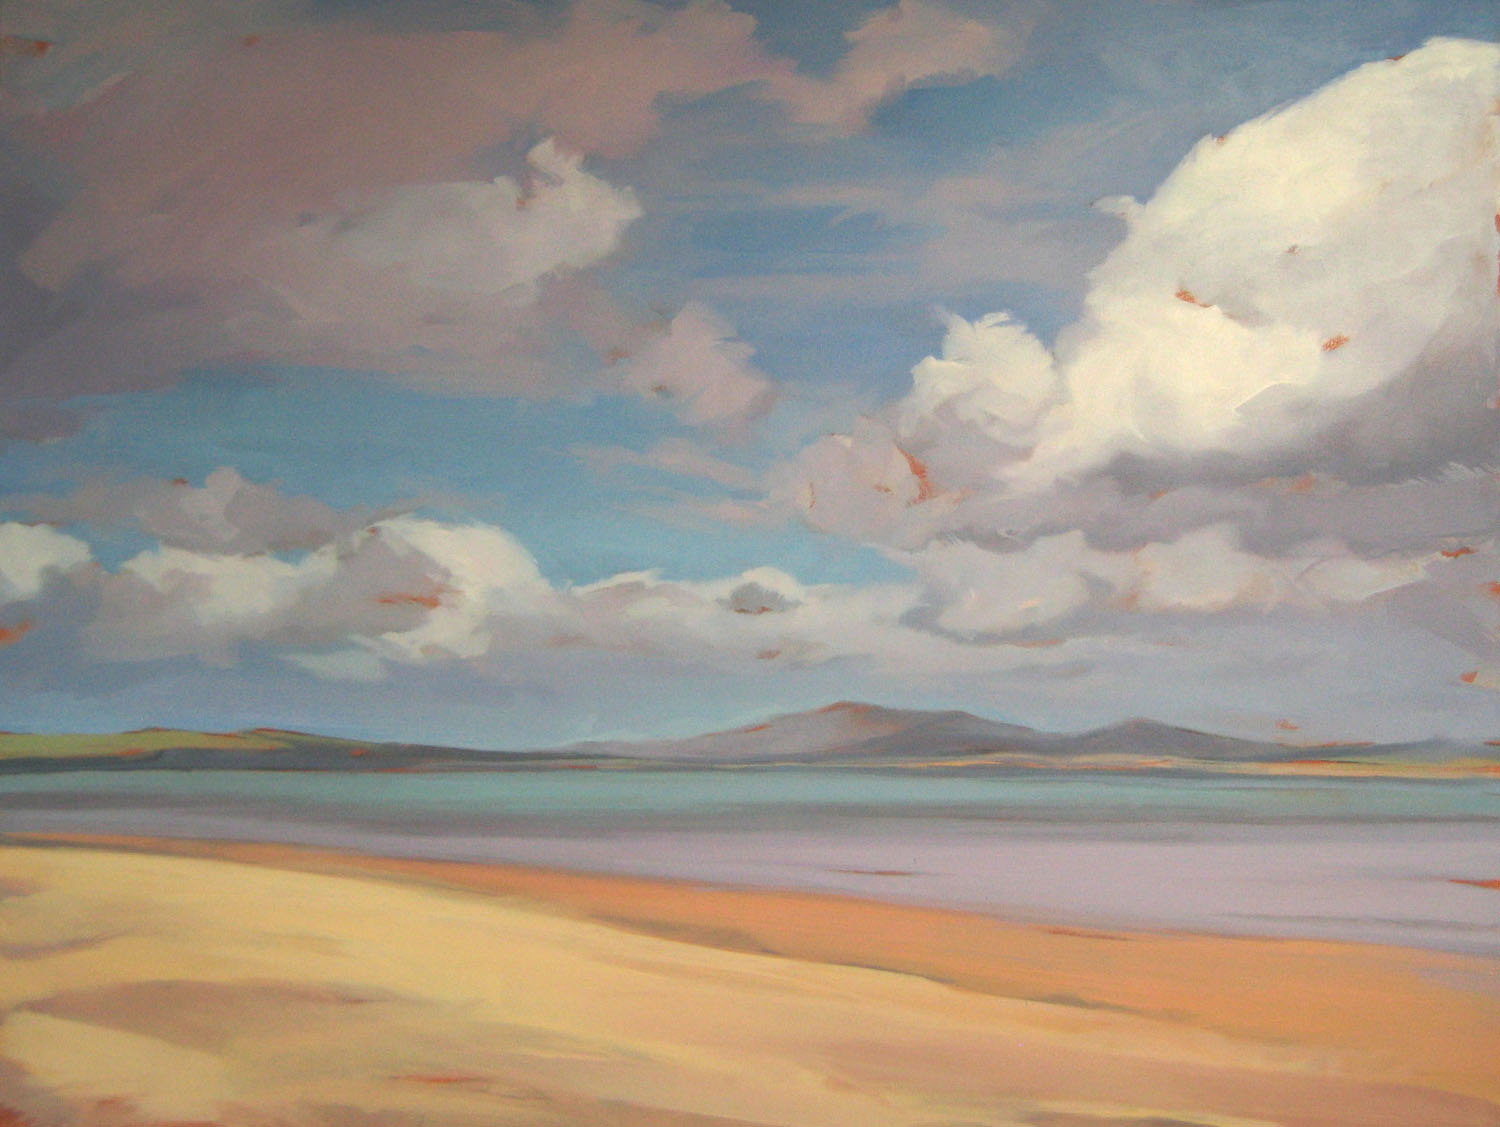 Tracey Quinn_2011_Rathmullan_oil on canvas_91 x 122cm.jpg